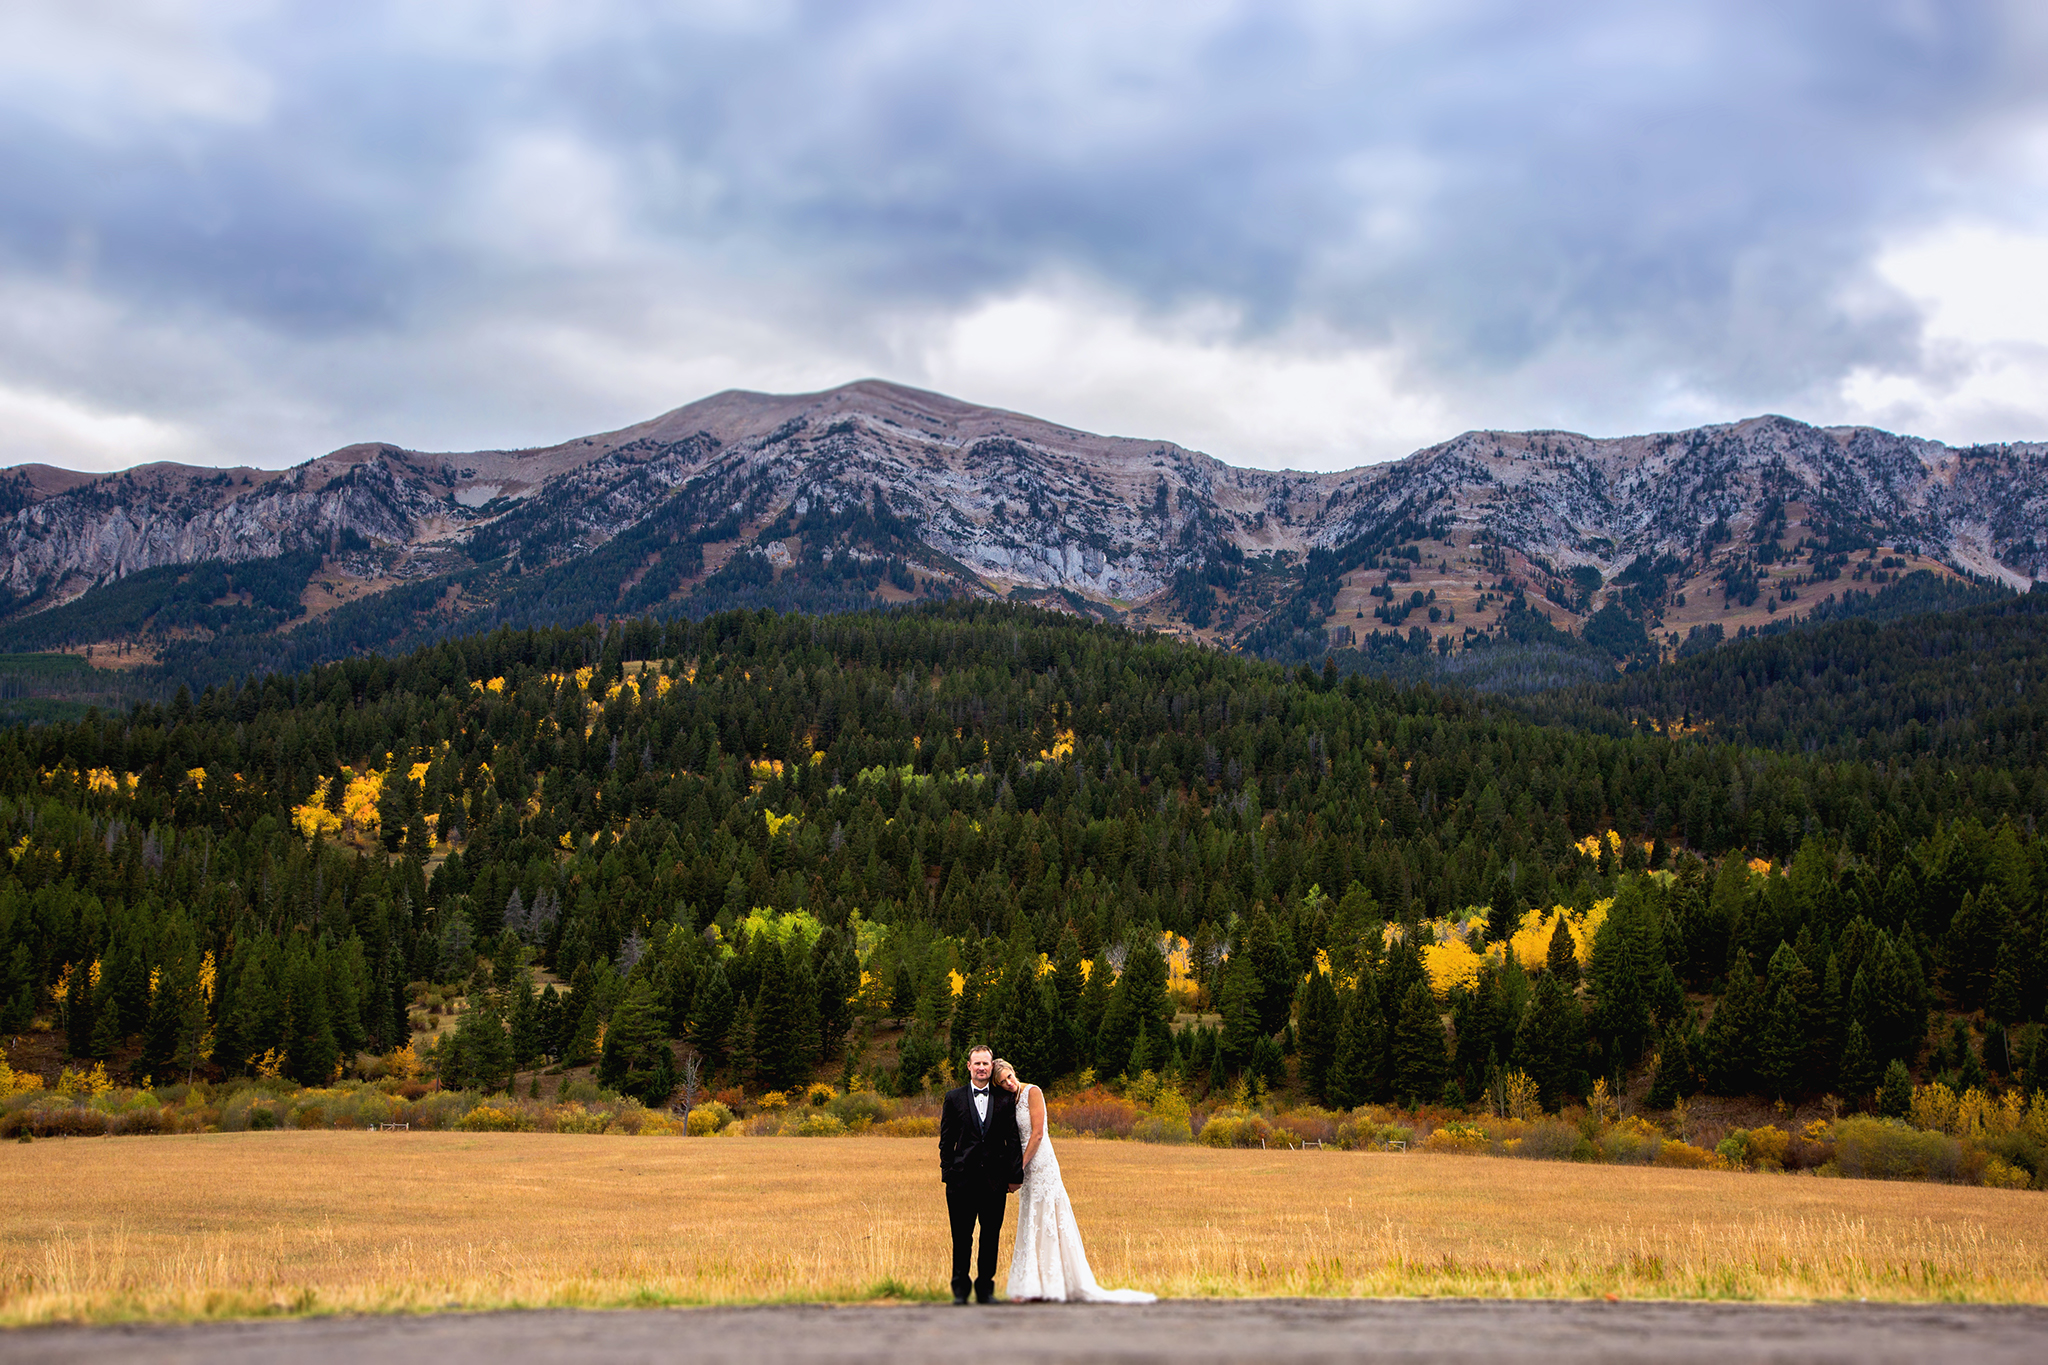 Rocky Mountain fell wedding portrait of bride and groom | wedding photo captured by Montana wedding